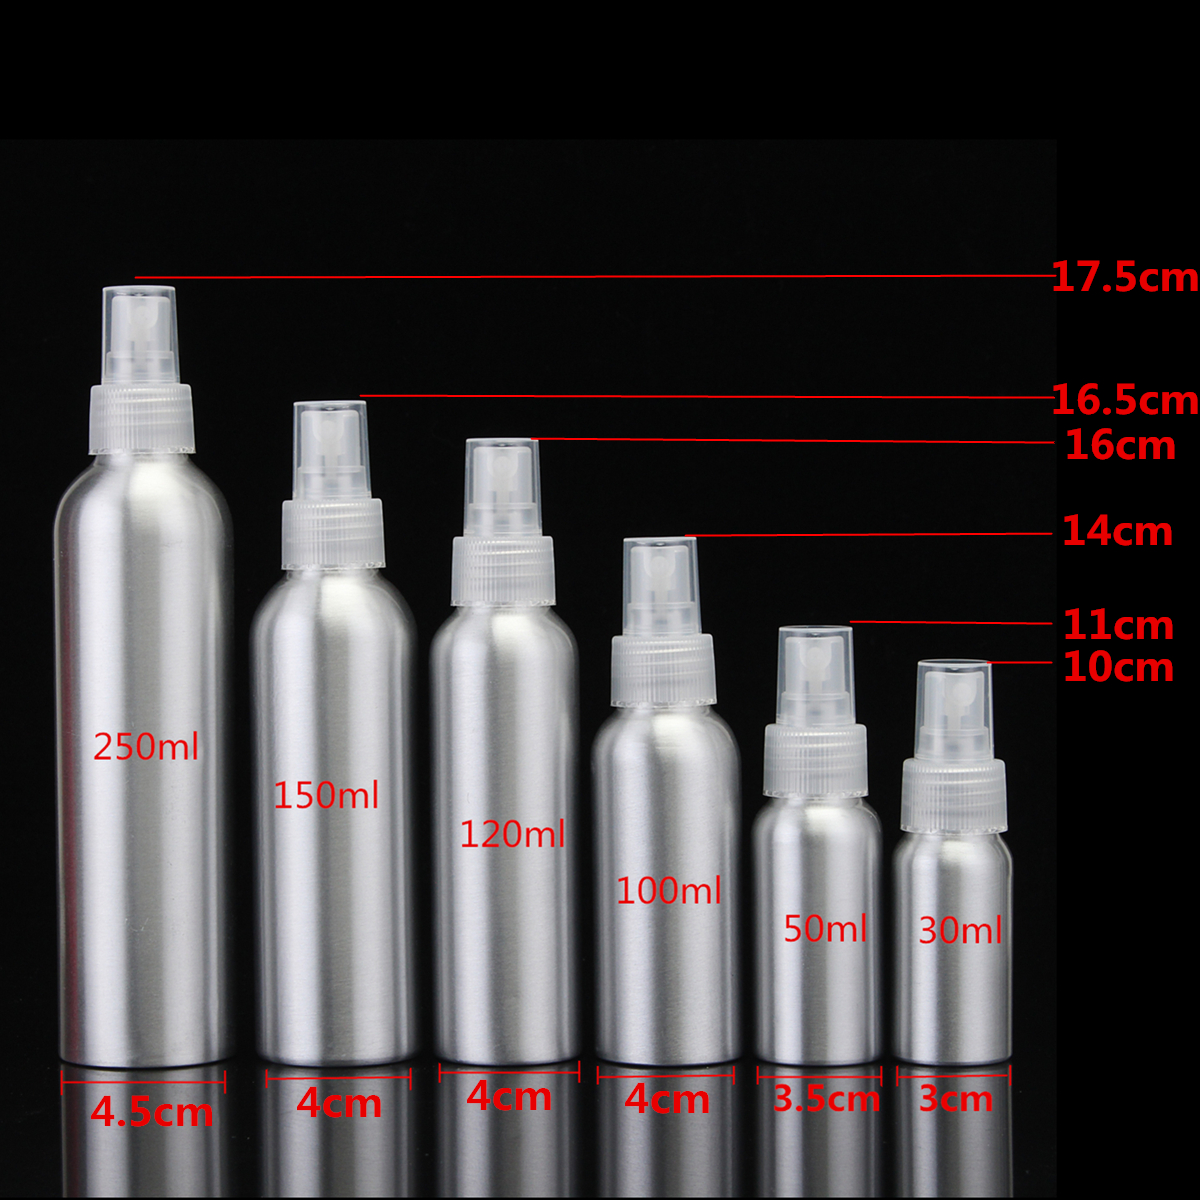 30/50/100/120/150/<font><b>250ml</b></font> Aluminium <font><b>Spray</b></font> <font><b>Bottle</b></font> 100ml Atomizer Empty <font><b>Bottles</b></font> Fine Mist Pump Storage Cosmetic Packaging Container image